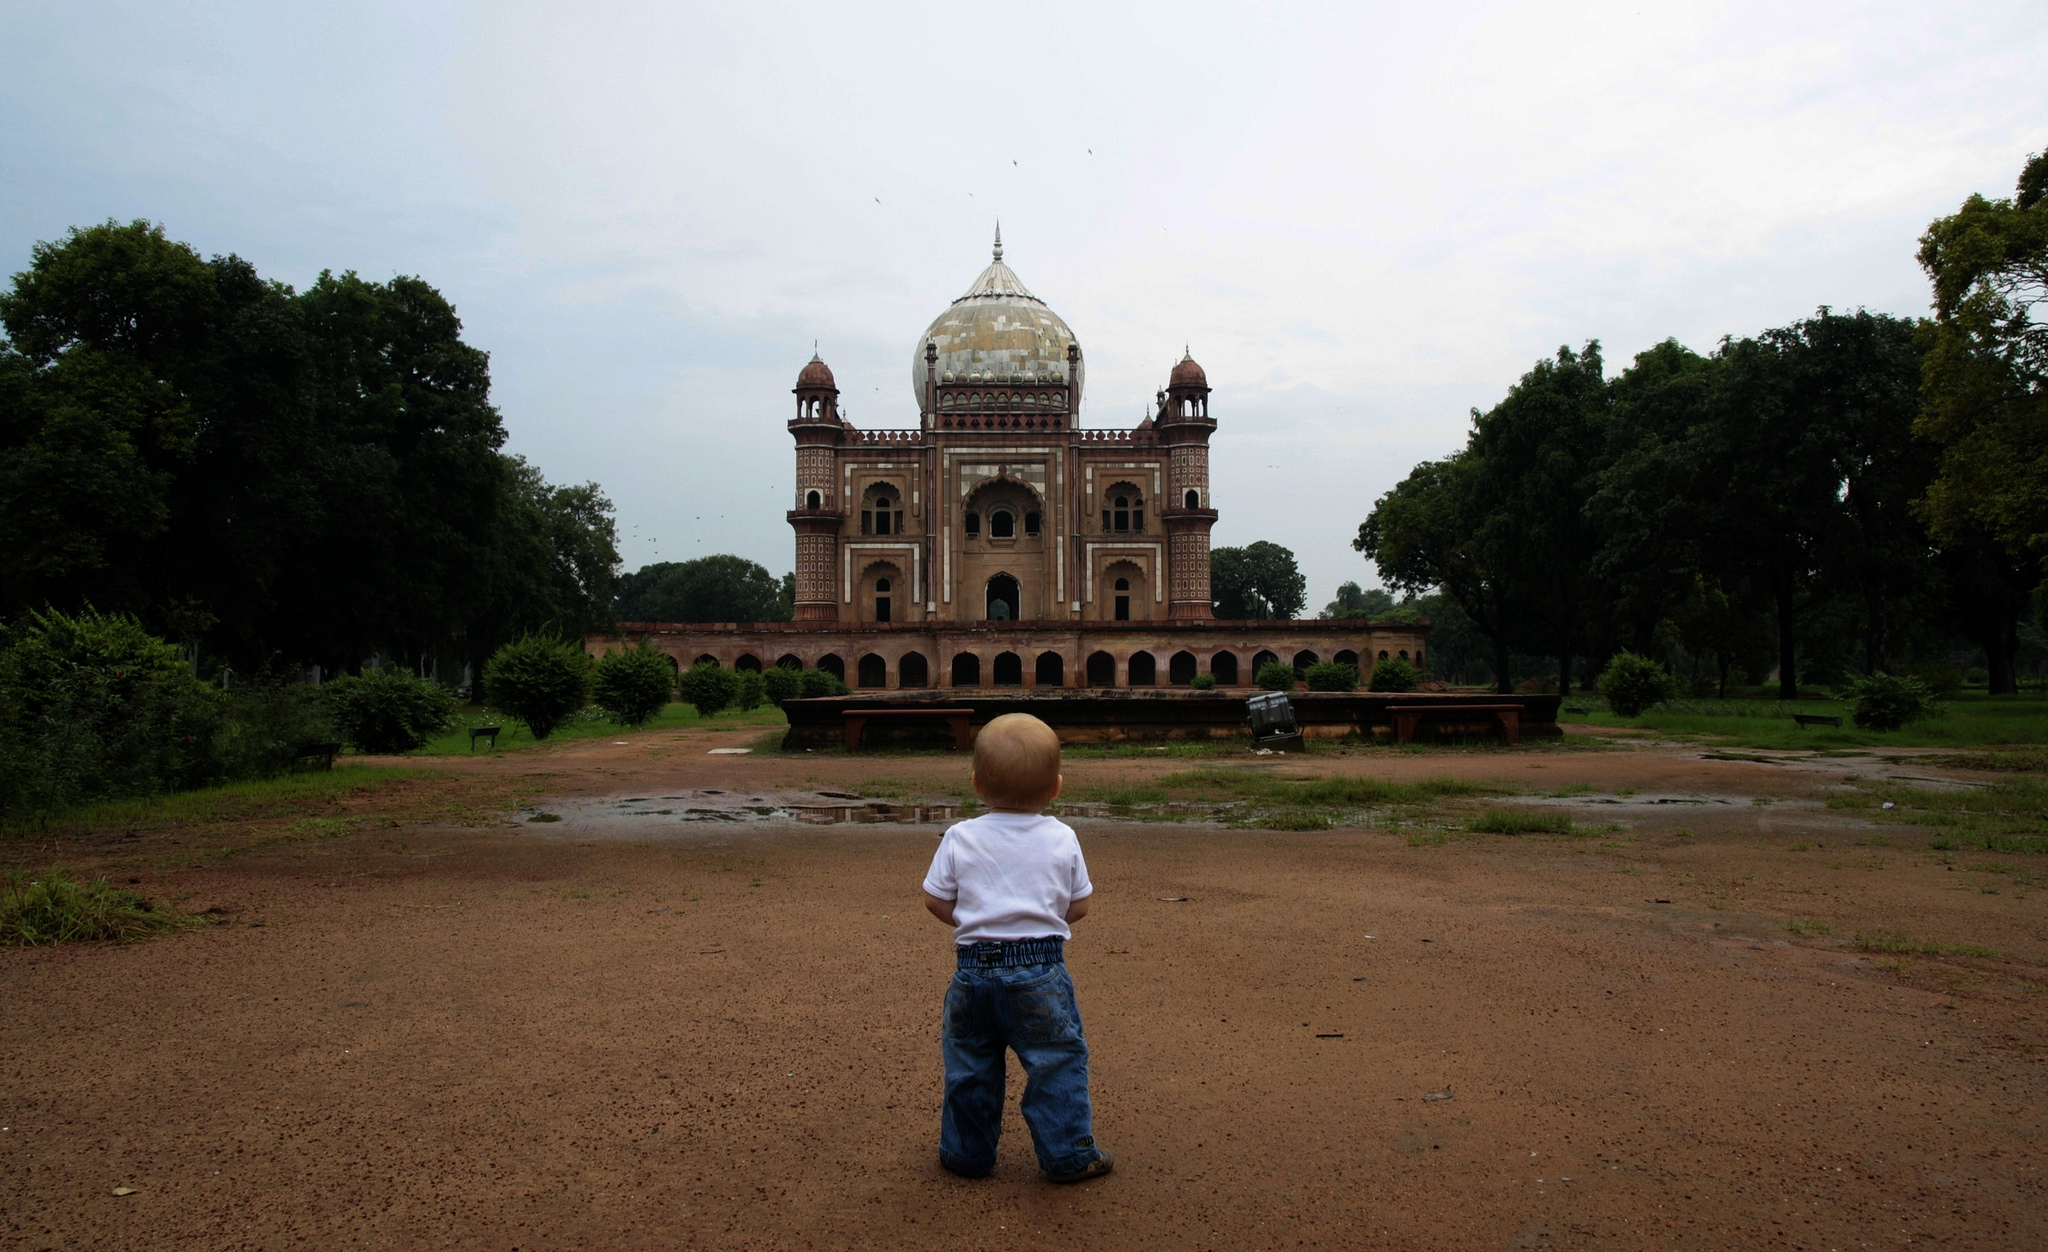 Will at safdarjung